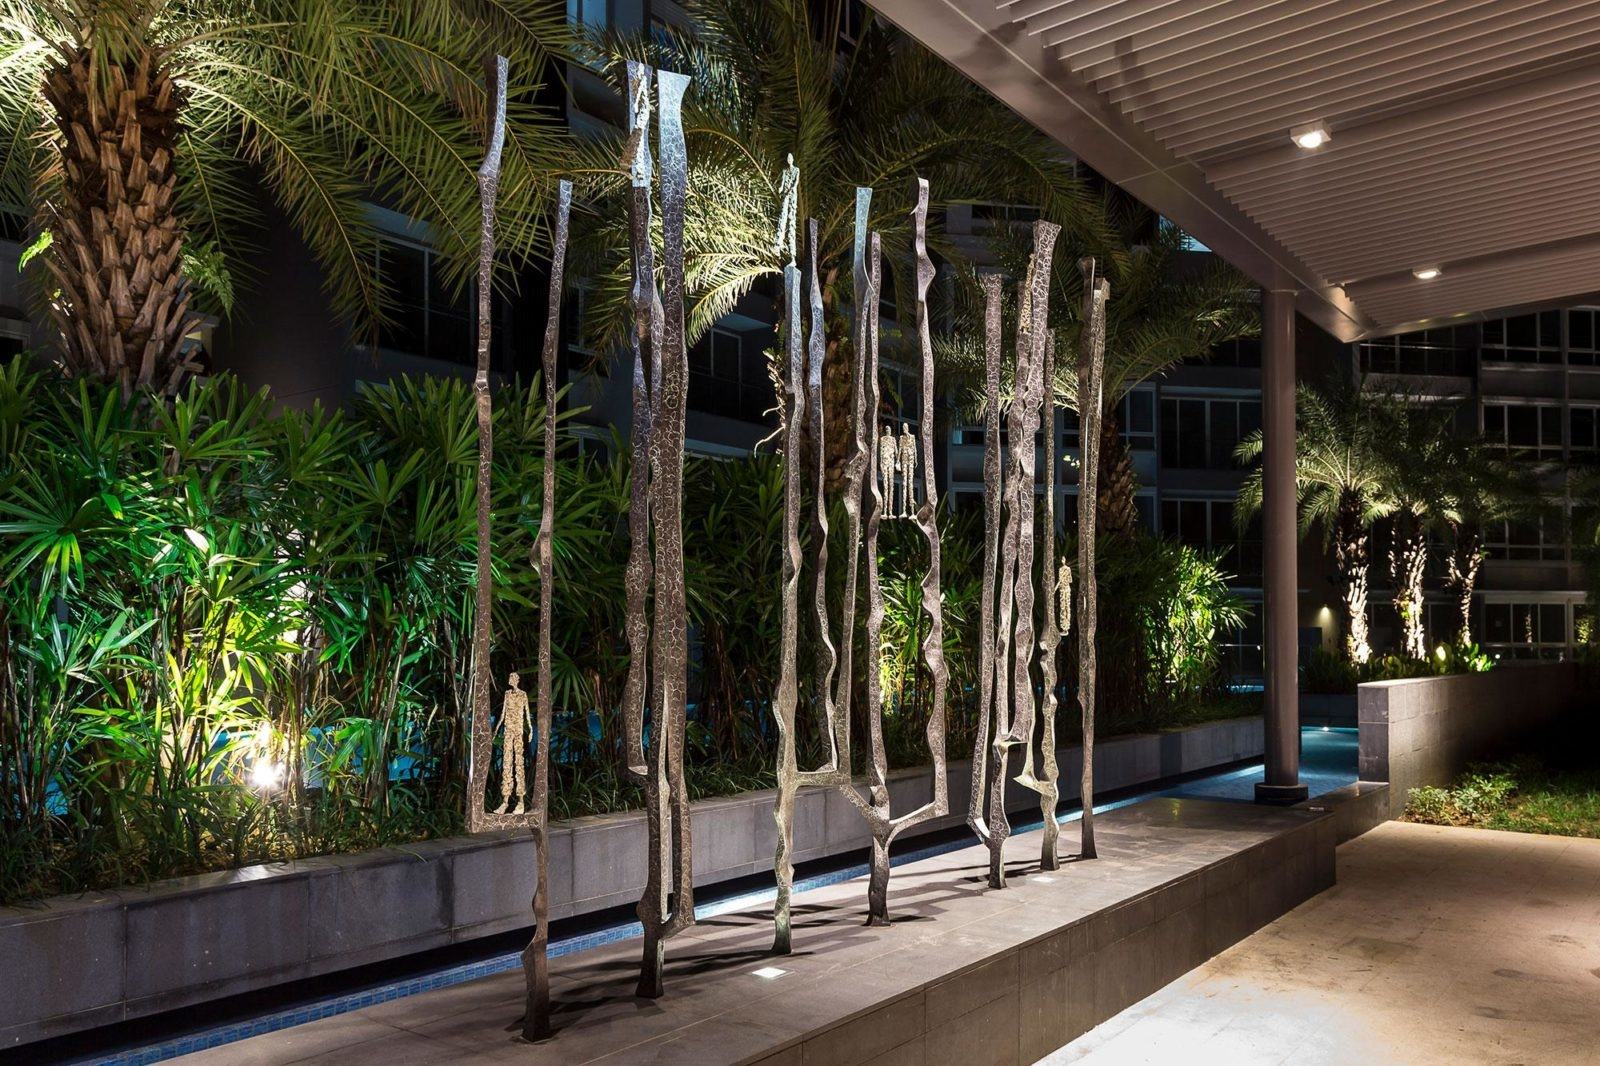 Footsteps II by French sculptor Val - Valérie Goutard - with Sculptureval in Sorrento Residence in Singapore